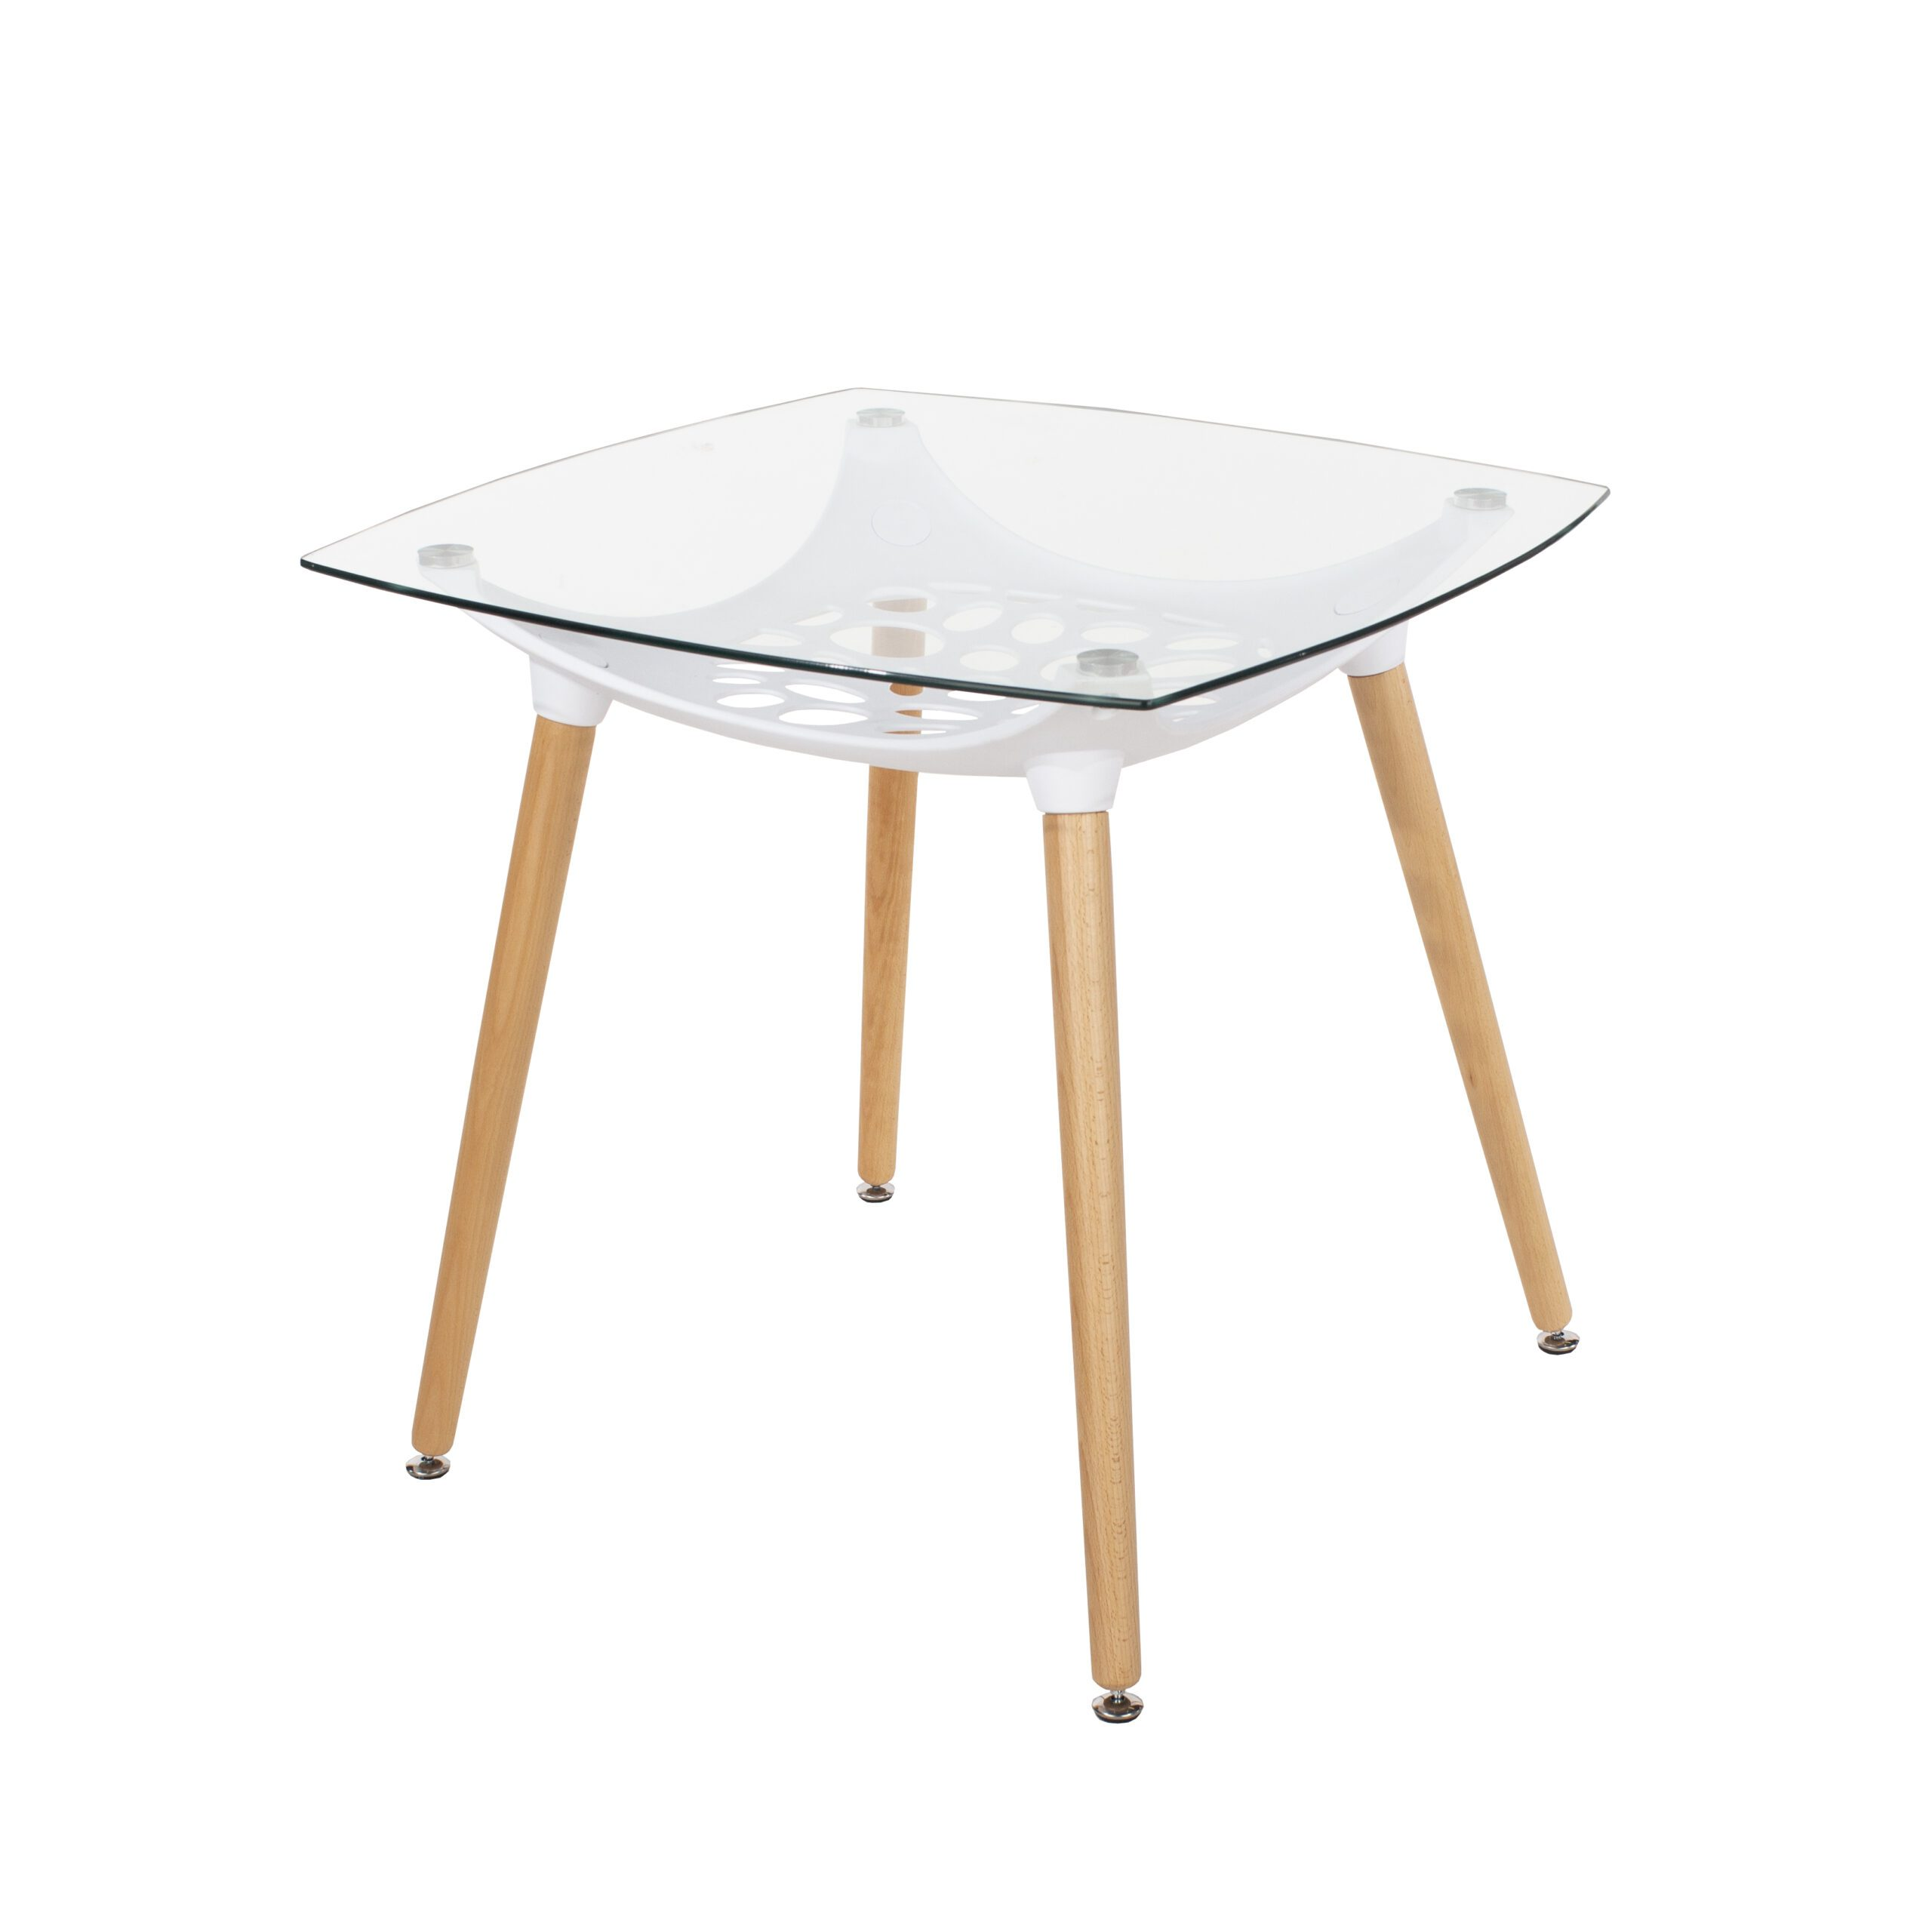 Penny Square Glass Top Table White Plastic Underframe & Wooden Legs